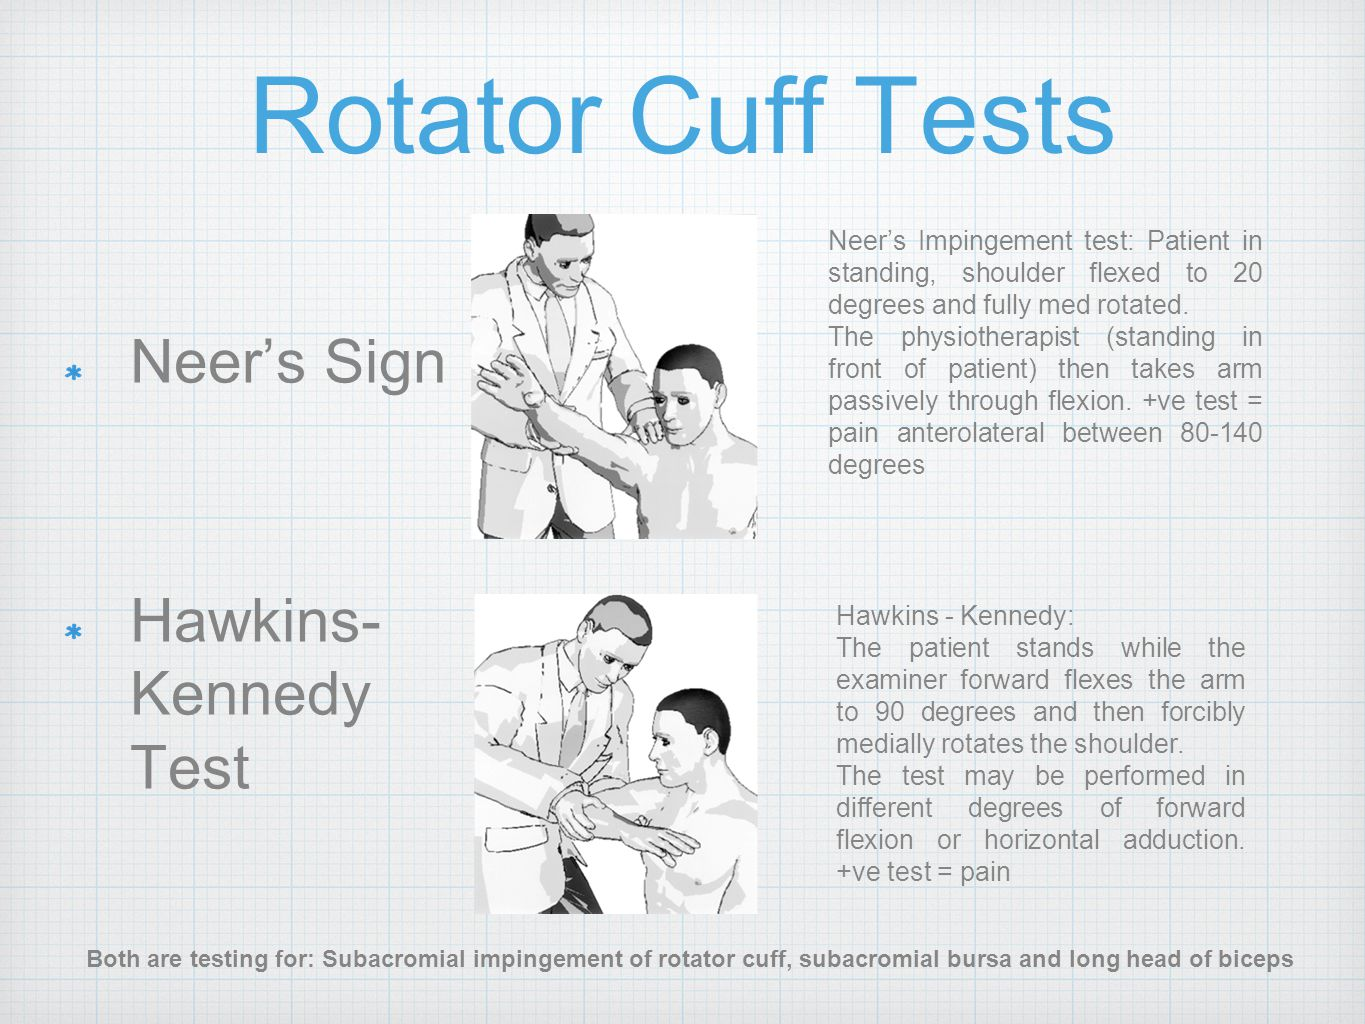 Neer's Sign Hawkins- Kennedy Test Rotator Cuff Tests Neer's Impingement test: Patient in standing, shoulder flexed to 20 degrees and fully med rotated